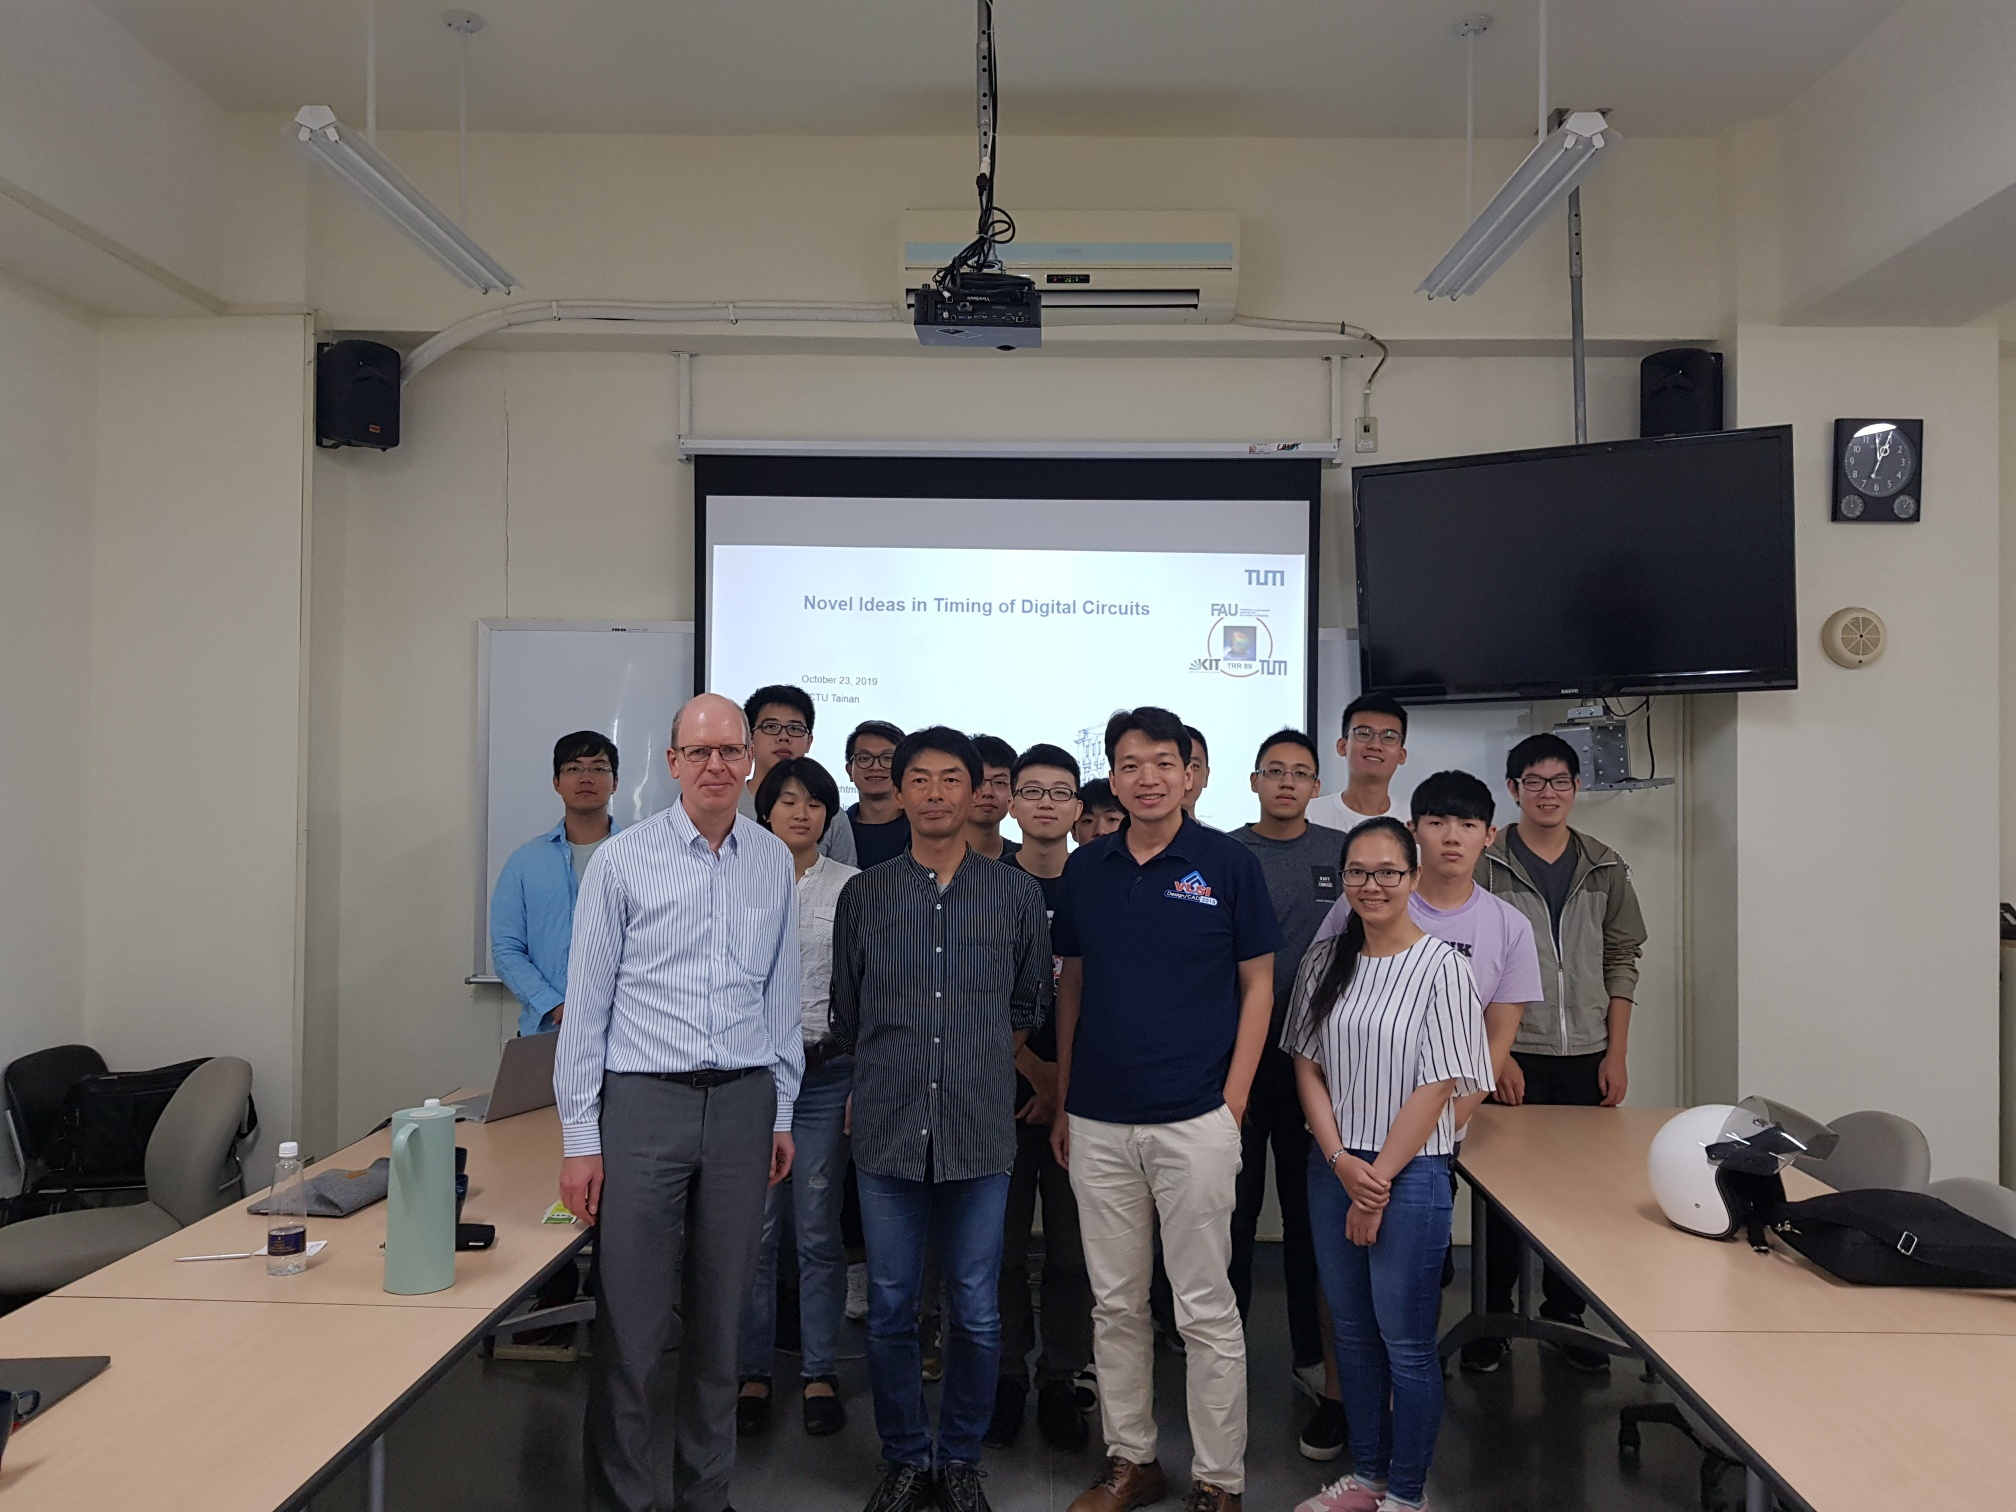 The photo shows Ulf Schlichtmann with his host, Prof. Mark Po-Hung Lin, and his students together with another visitor.></br></p>